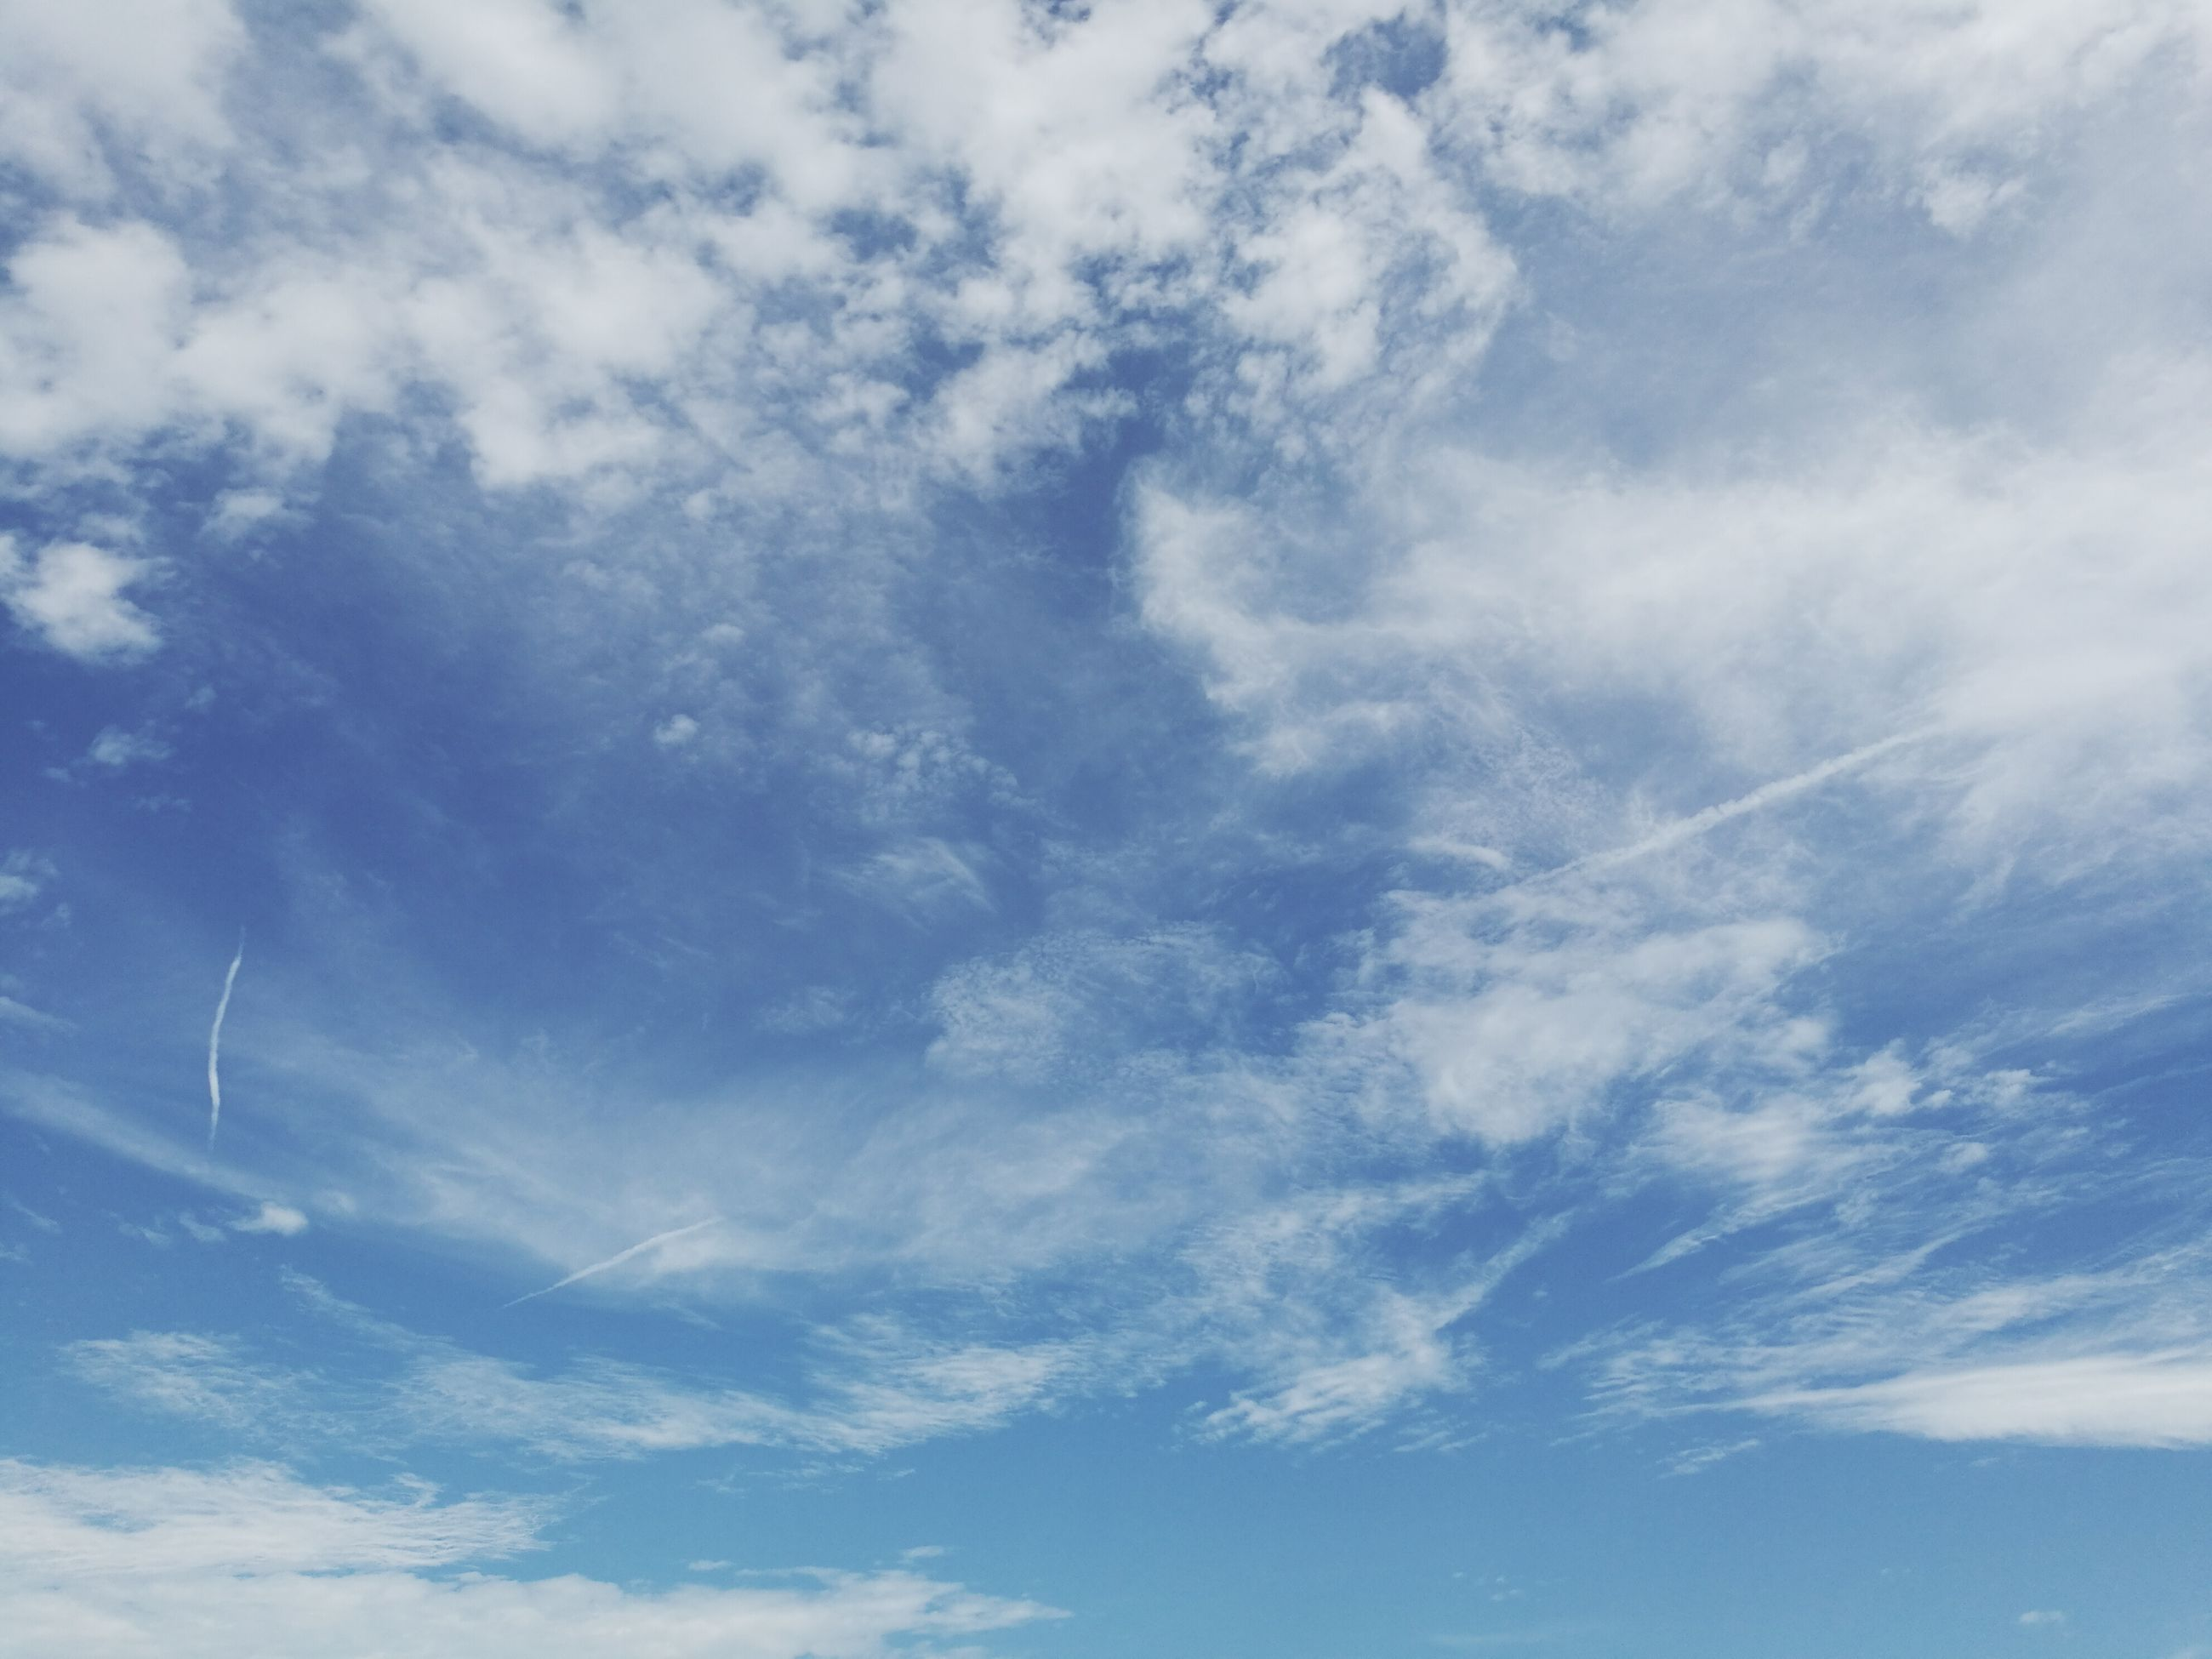 sky, low angle view, cloud - sky, blue, beauty in nature, tranquility, scenics, nature, cloudy, sky only, tranquil scene, backgrounds, cloud, cloudscape, day, idyllic, full frame, outdoors, no people, weather, white, majestic, softness